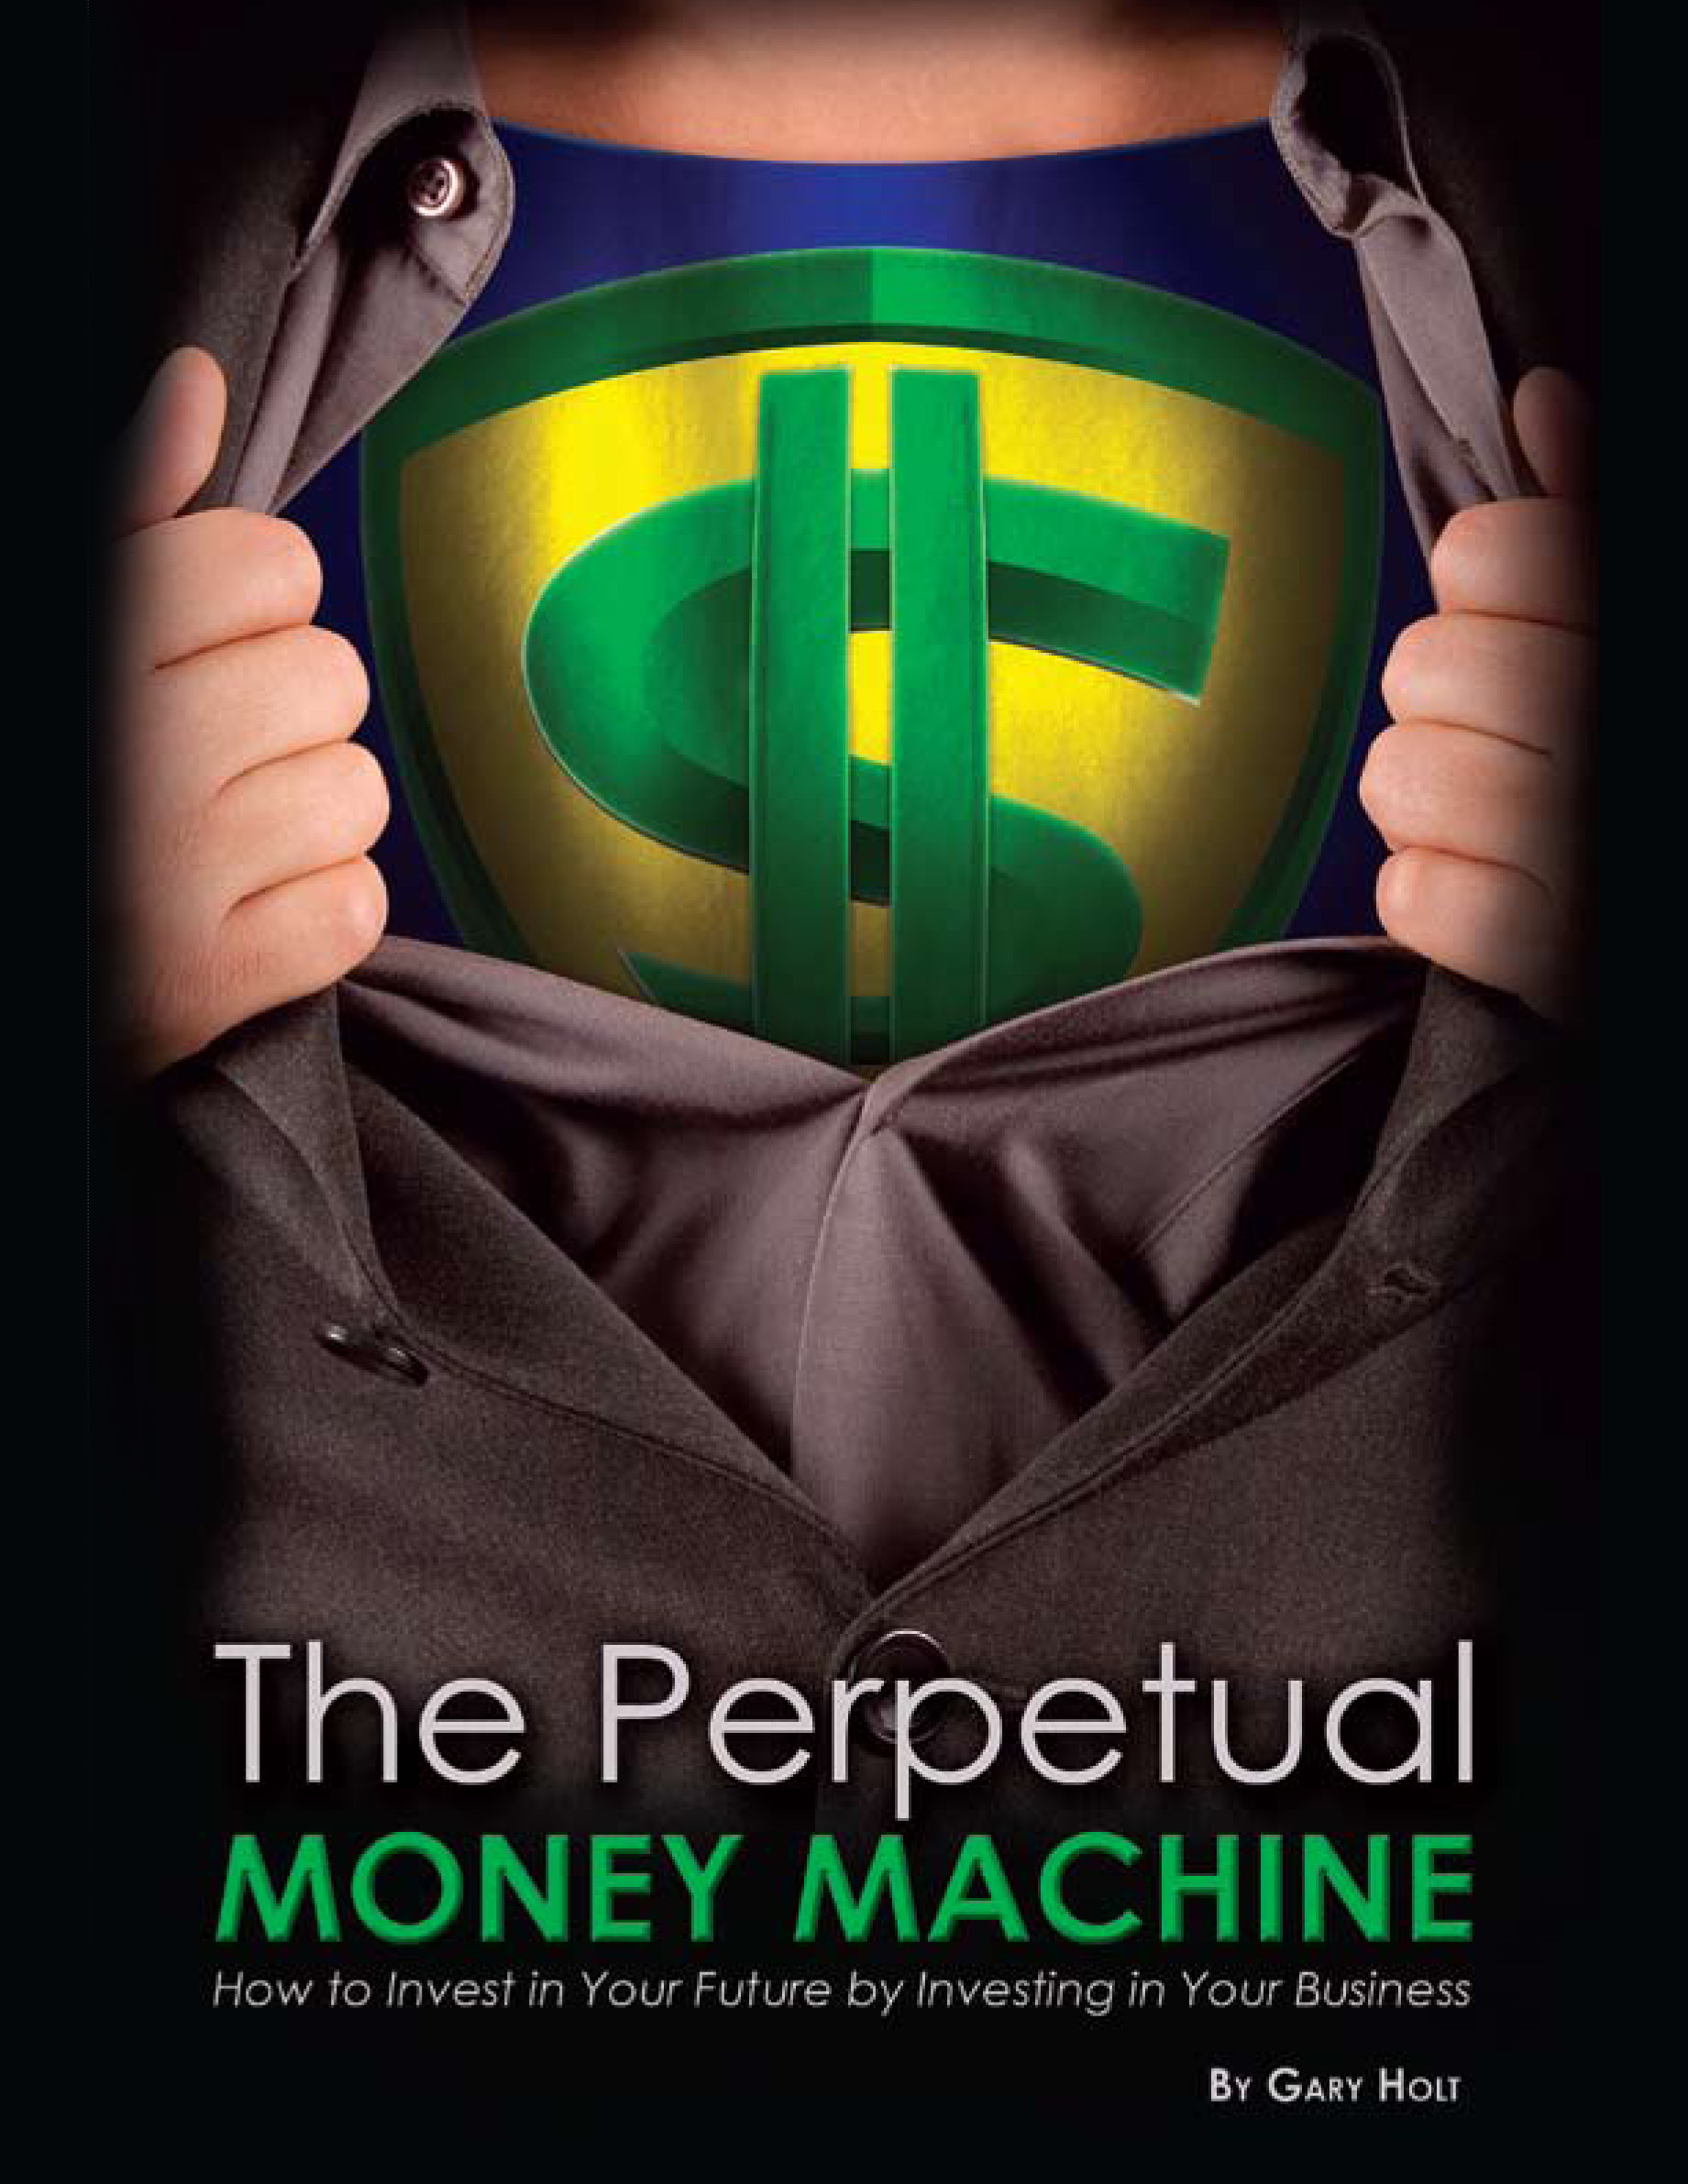 The Perpetual Money Machine